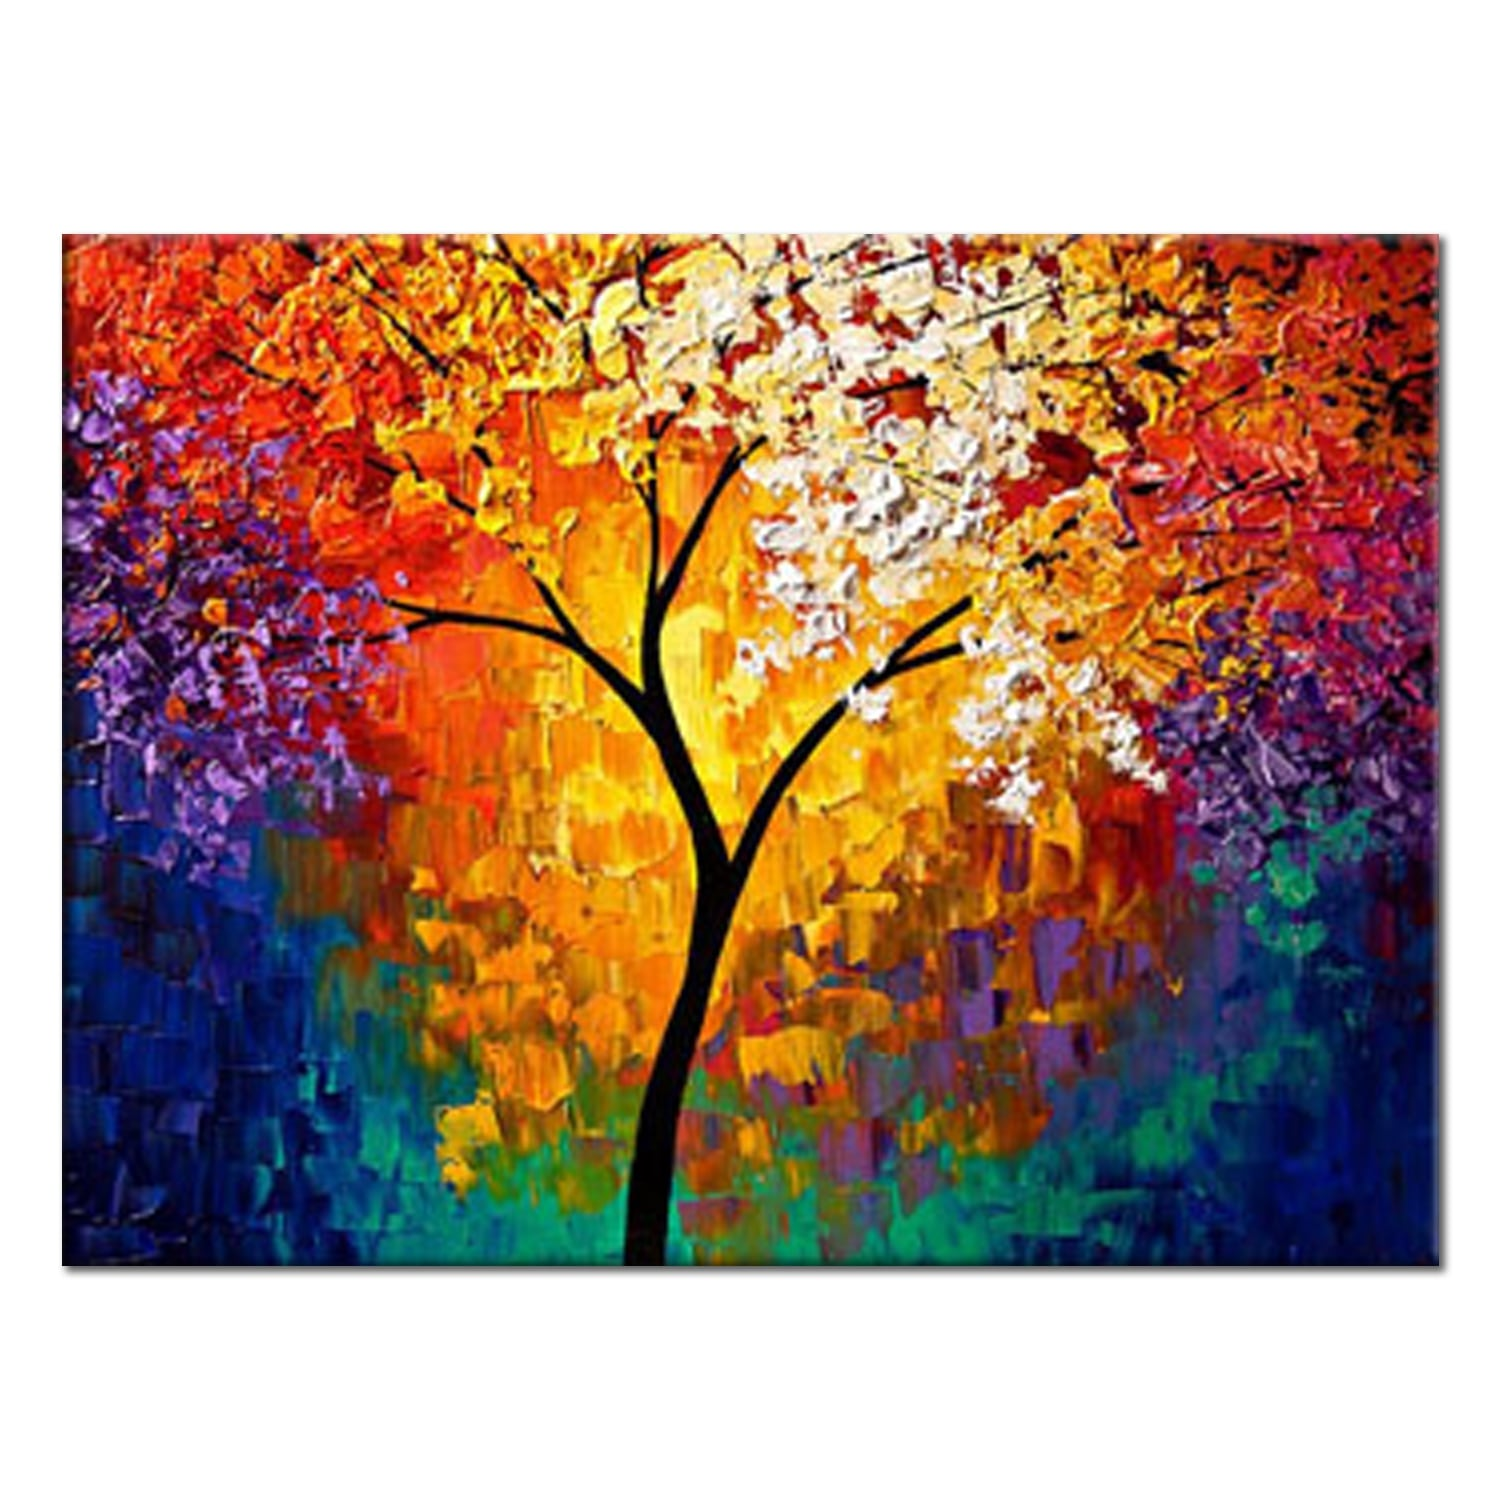 Natural tree oil painting for a unique wall decoration